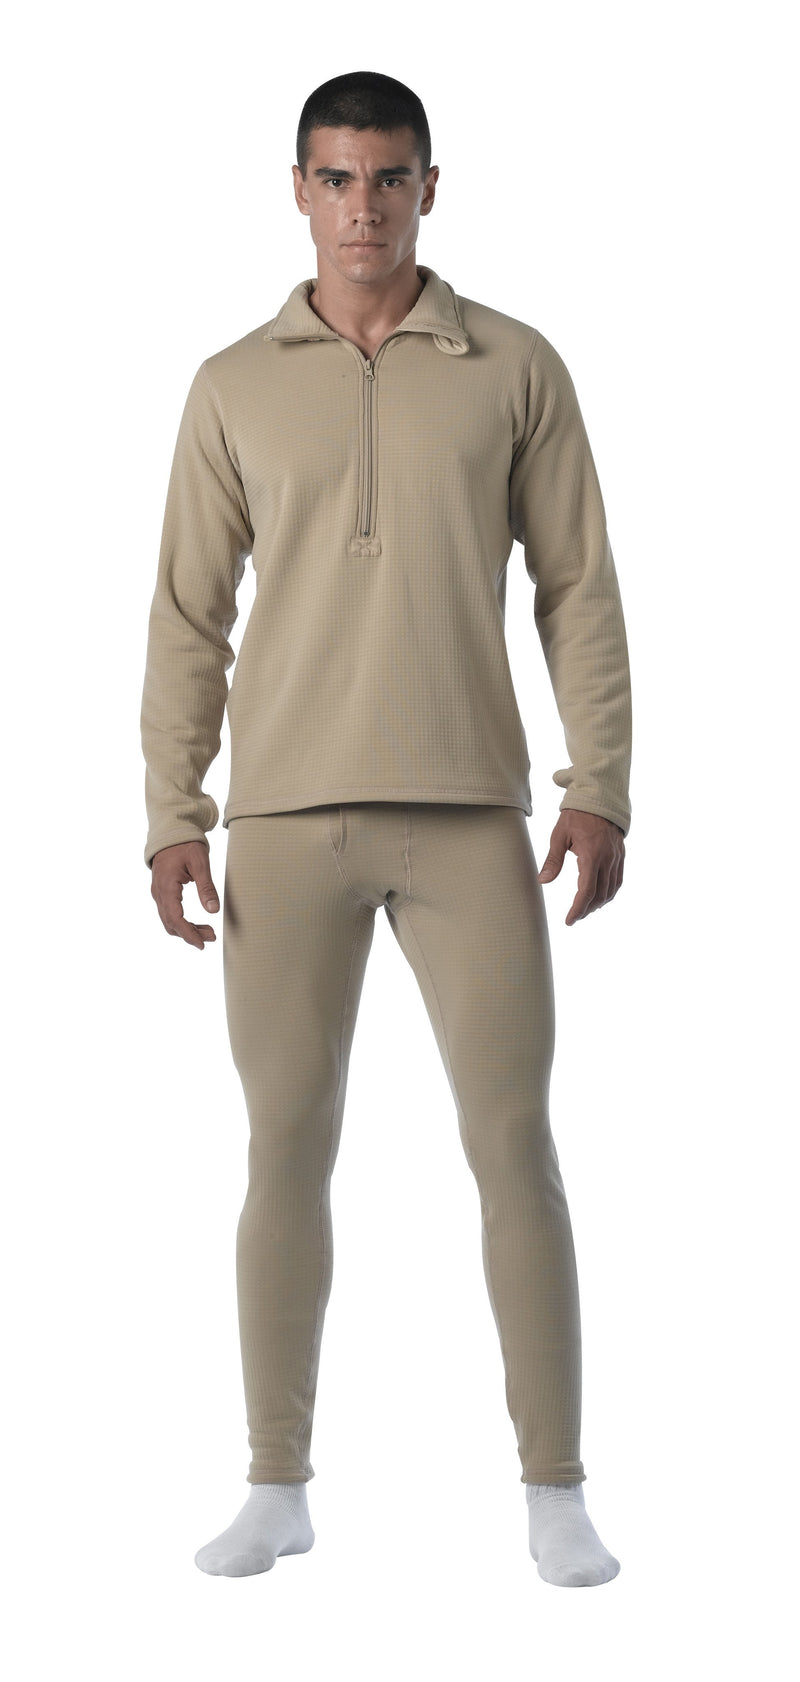 69024 Rothco Desert Sand E.C.W.C.S. Gen III Mid-Weight Thermal Bottoms